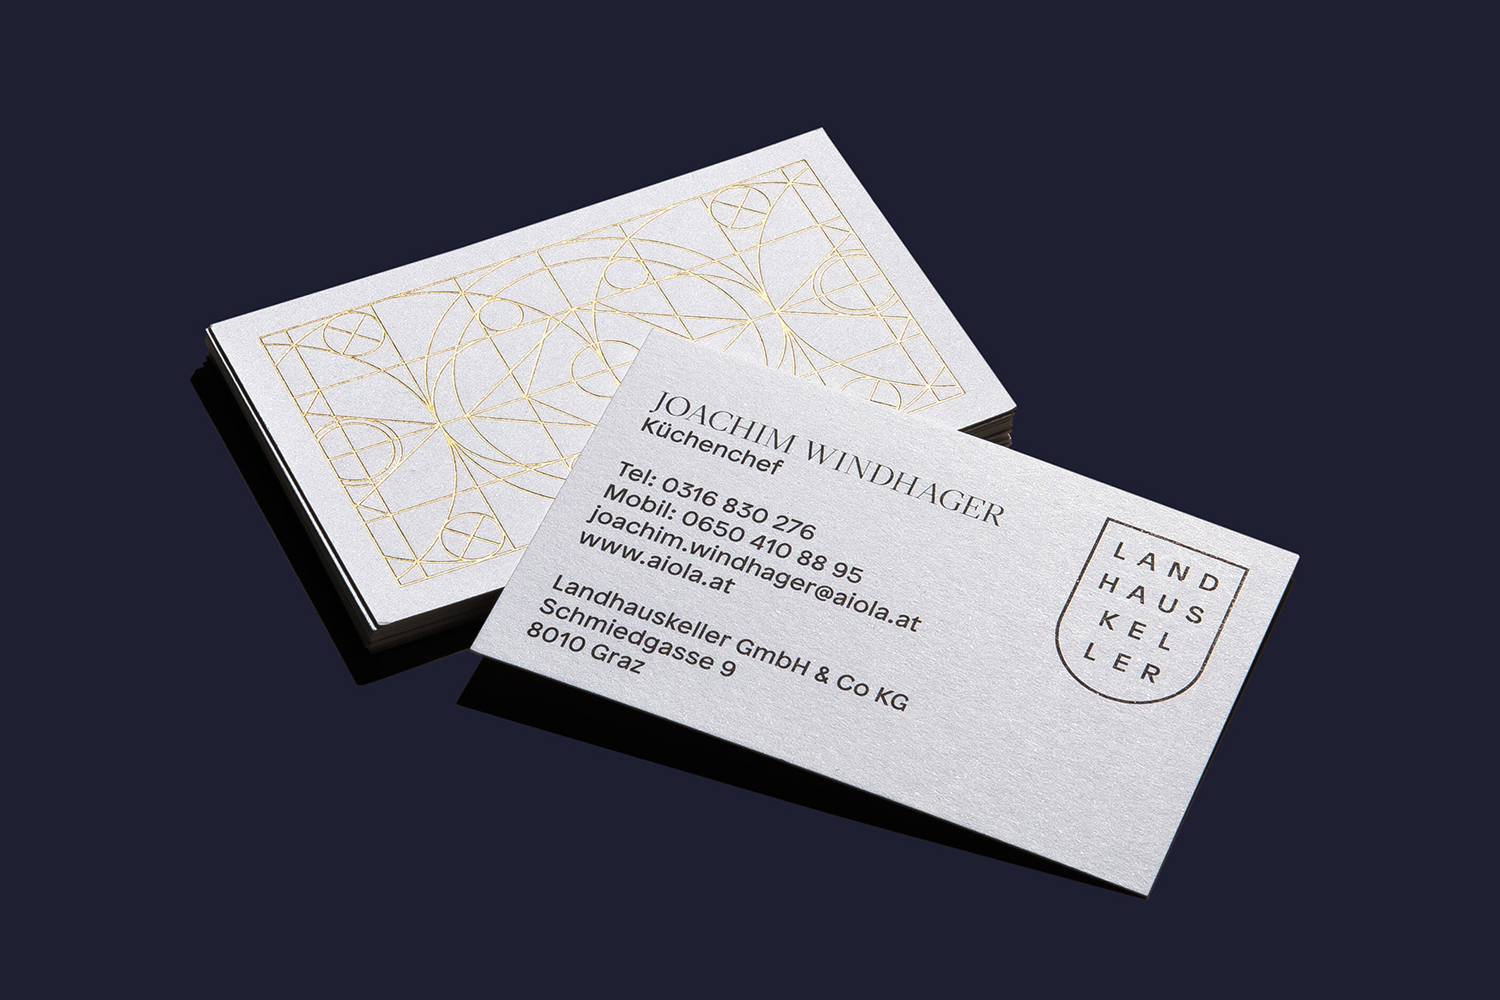 Brand identity and gold foiled business cards by Austrian graphic design studio Seite Zwei for Graz-based restaurant Landhaus Keller.